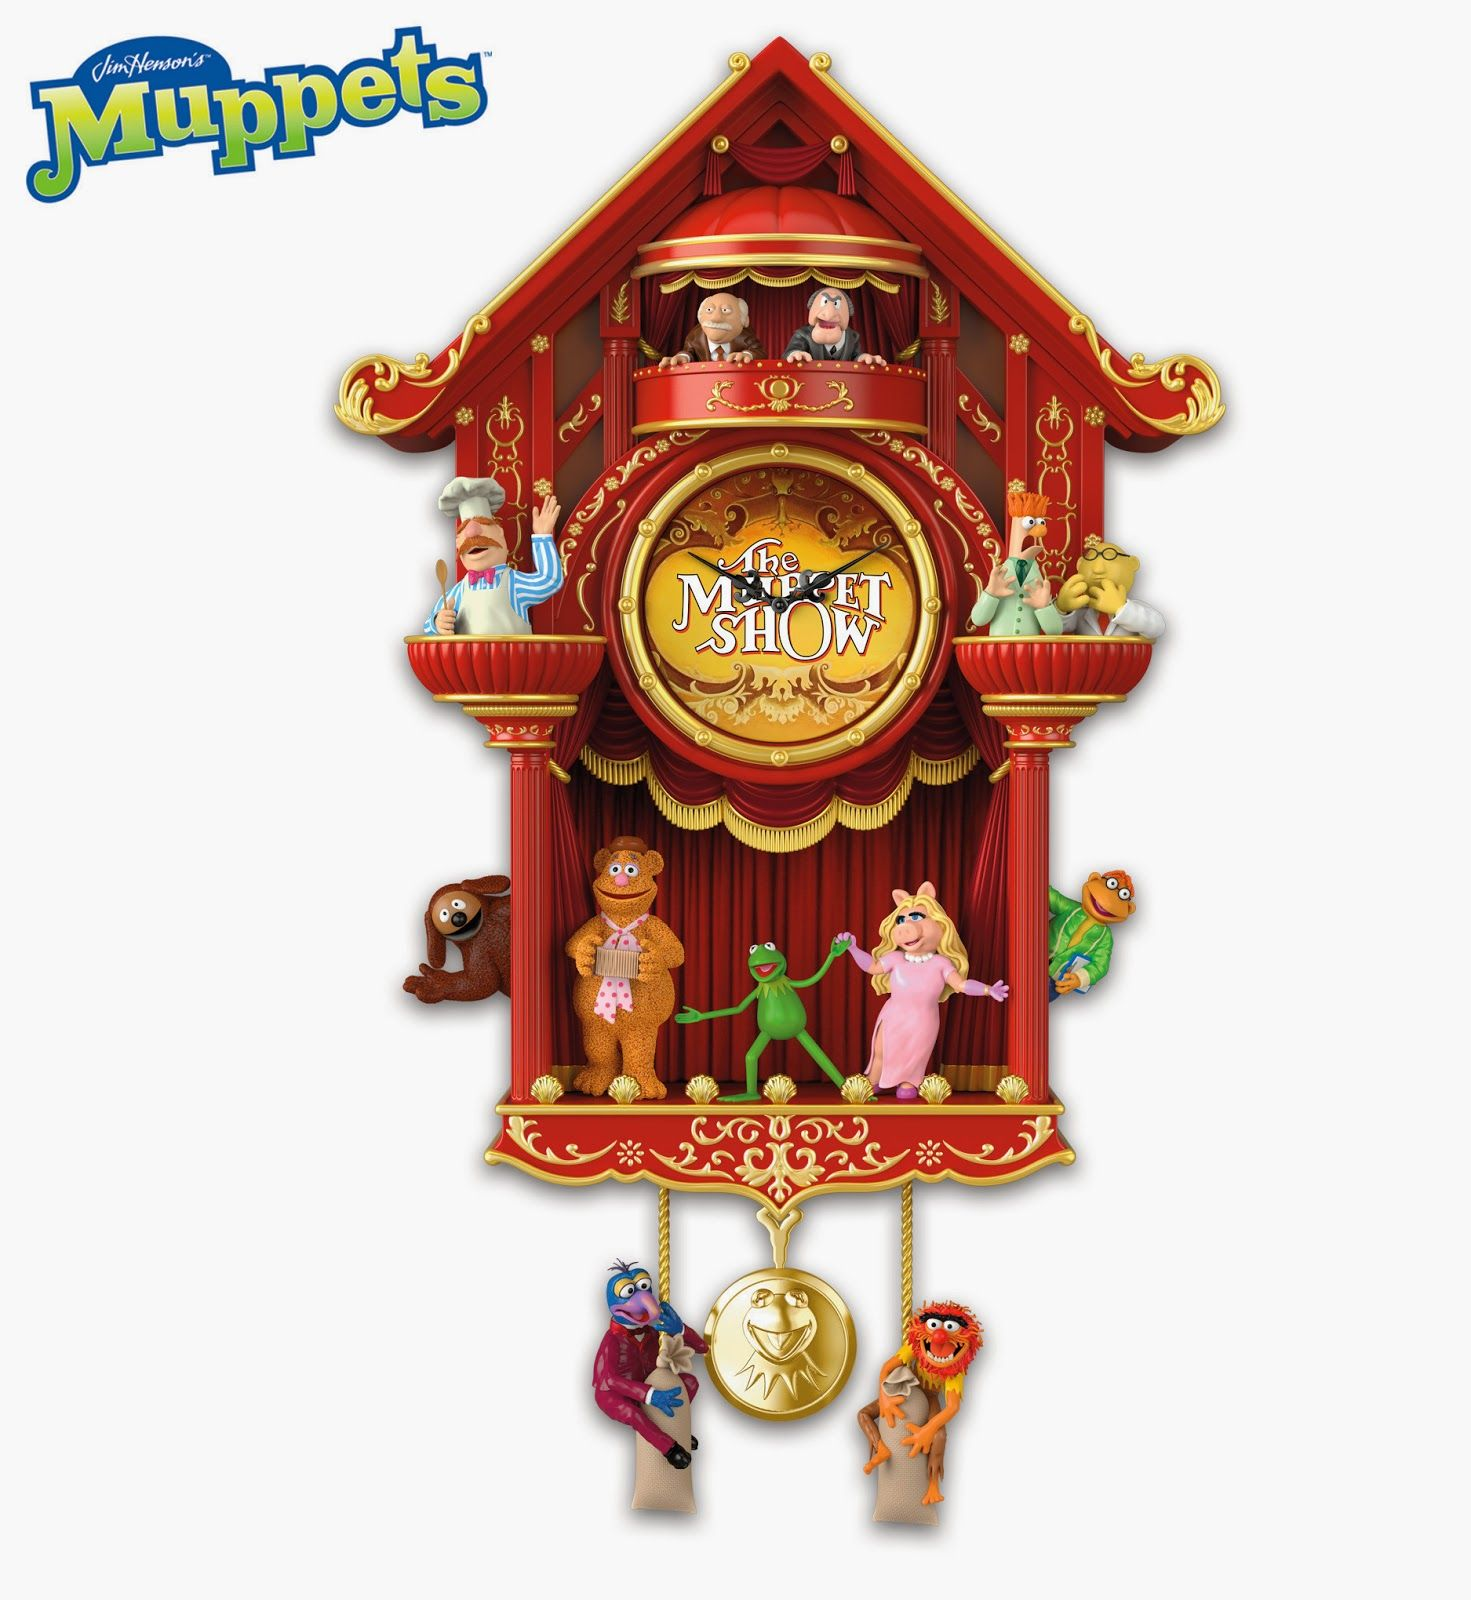 Cool Cuckoo Clocks Muppet Stuff Bradford Exchange Muppet Show Clock Muppets